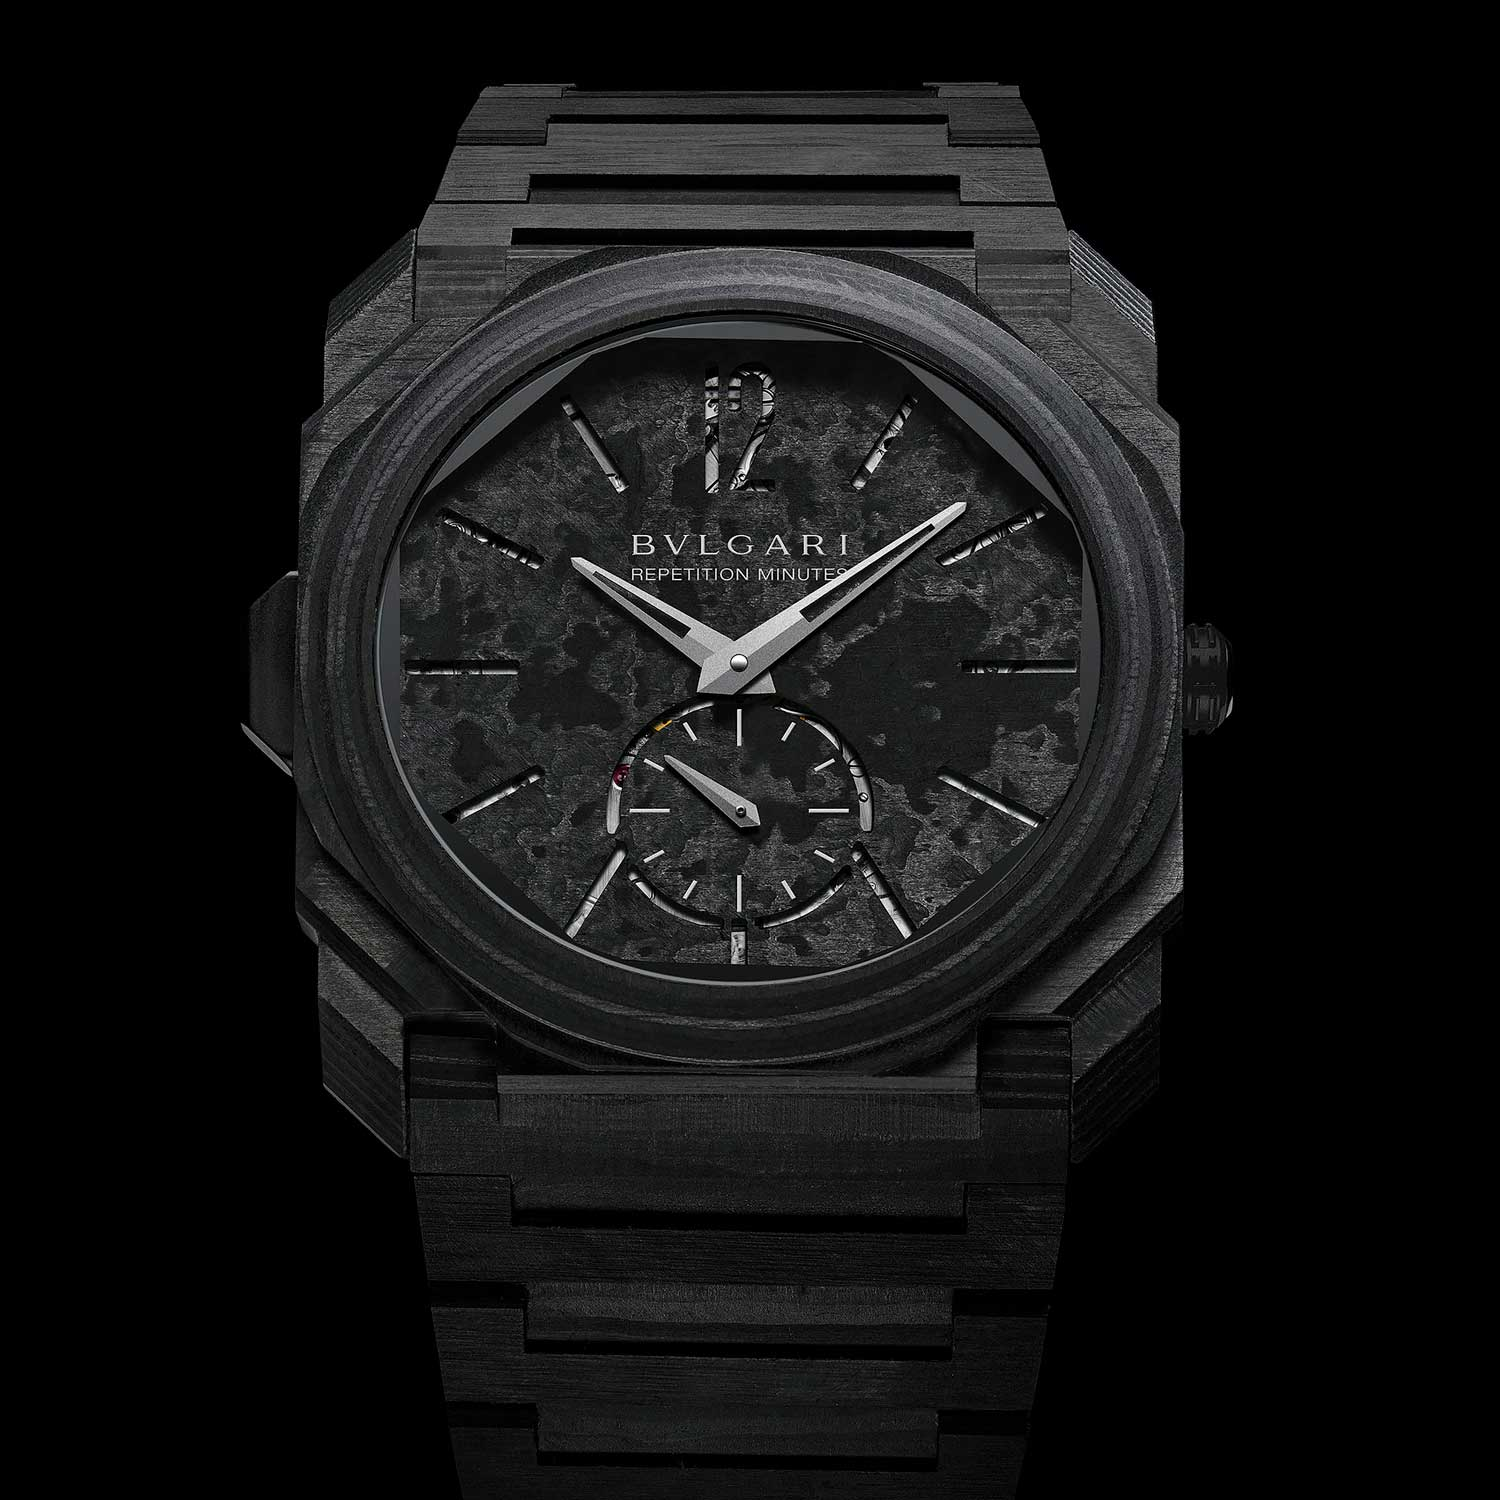 The 2018 Octo Finissimo Minute Repeater Carbon in carbon thin-ply (CTP)